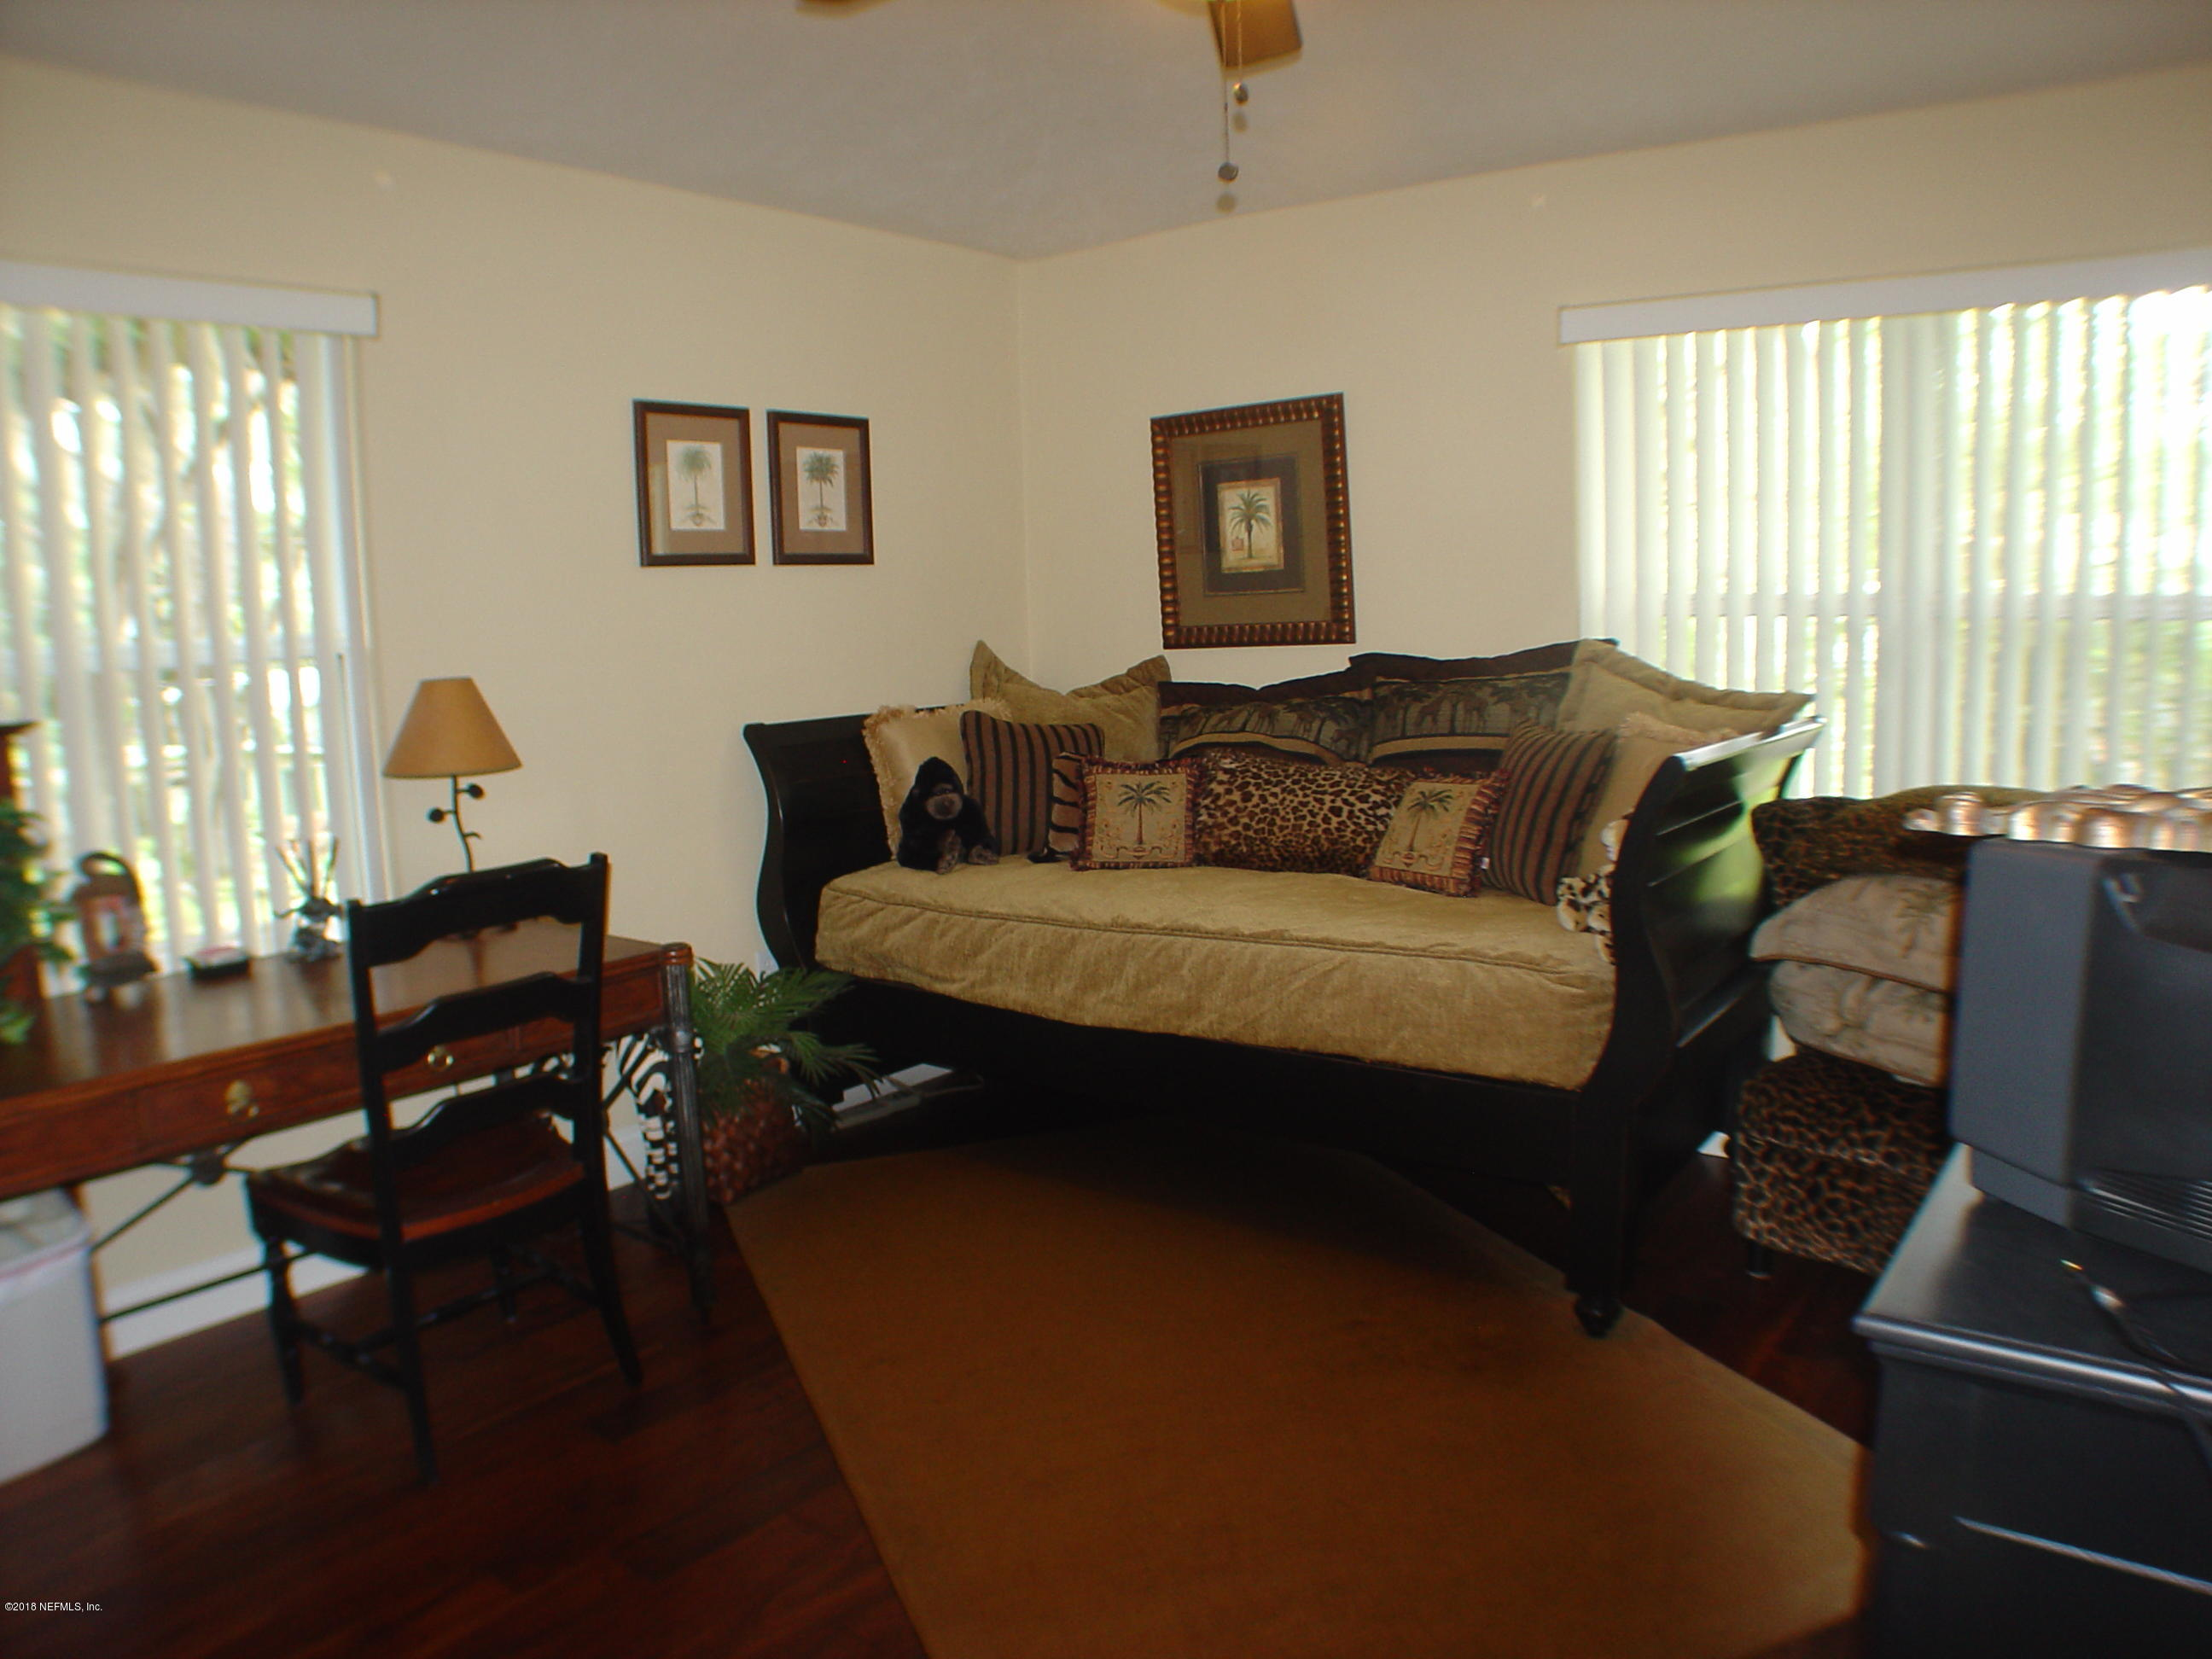 21112 101ST, EARLTON, FLORIDA 32631, 2 Bedrooms Bedrooms, ,2 BathroomsBathrooms,Residential - condos/townhomes,For sale,101ST,937954